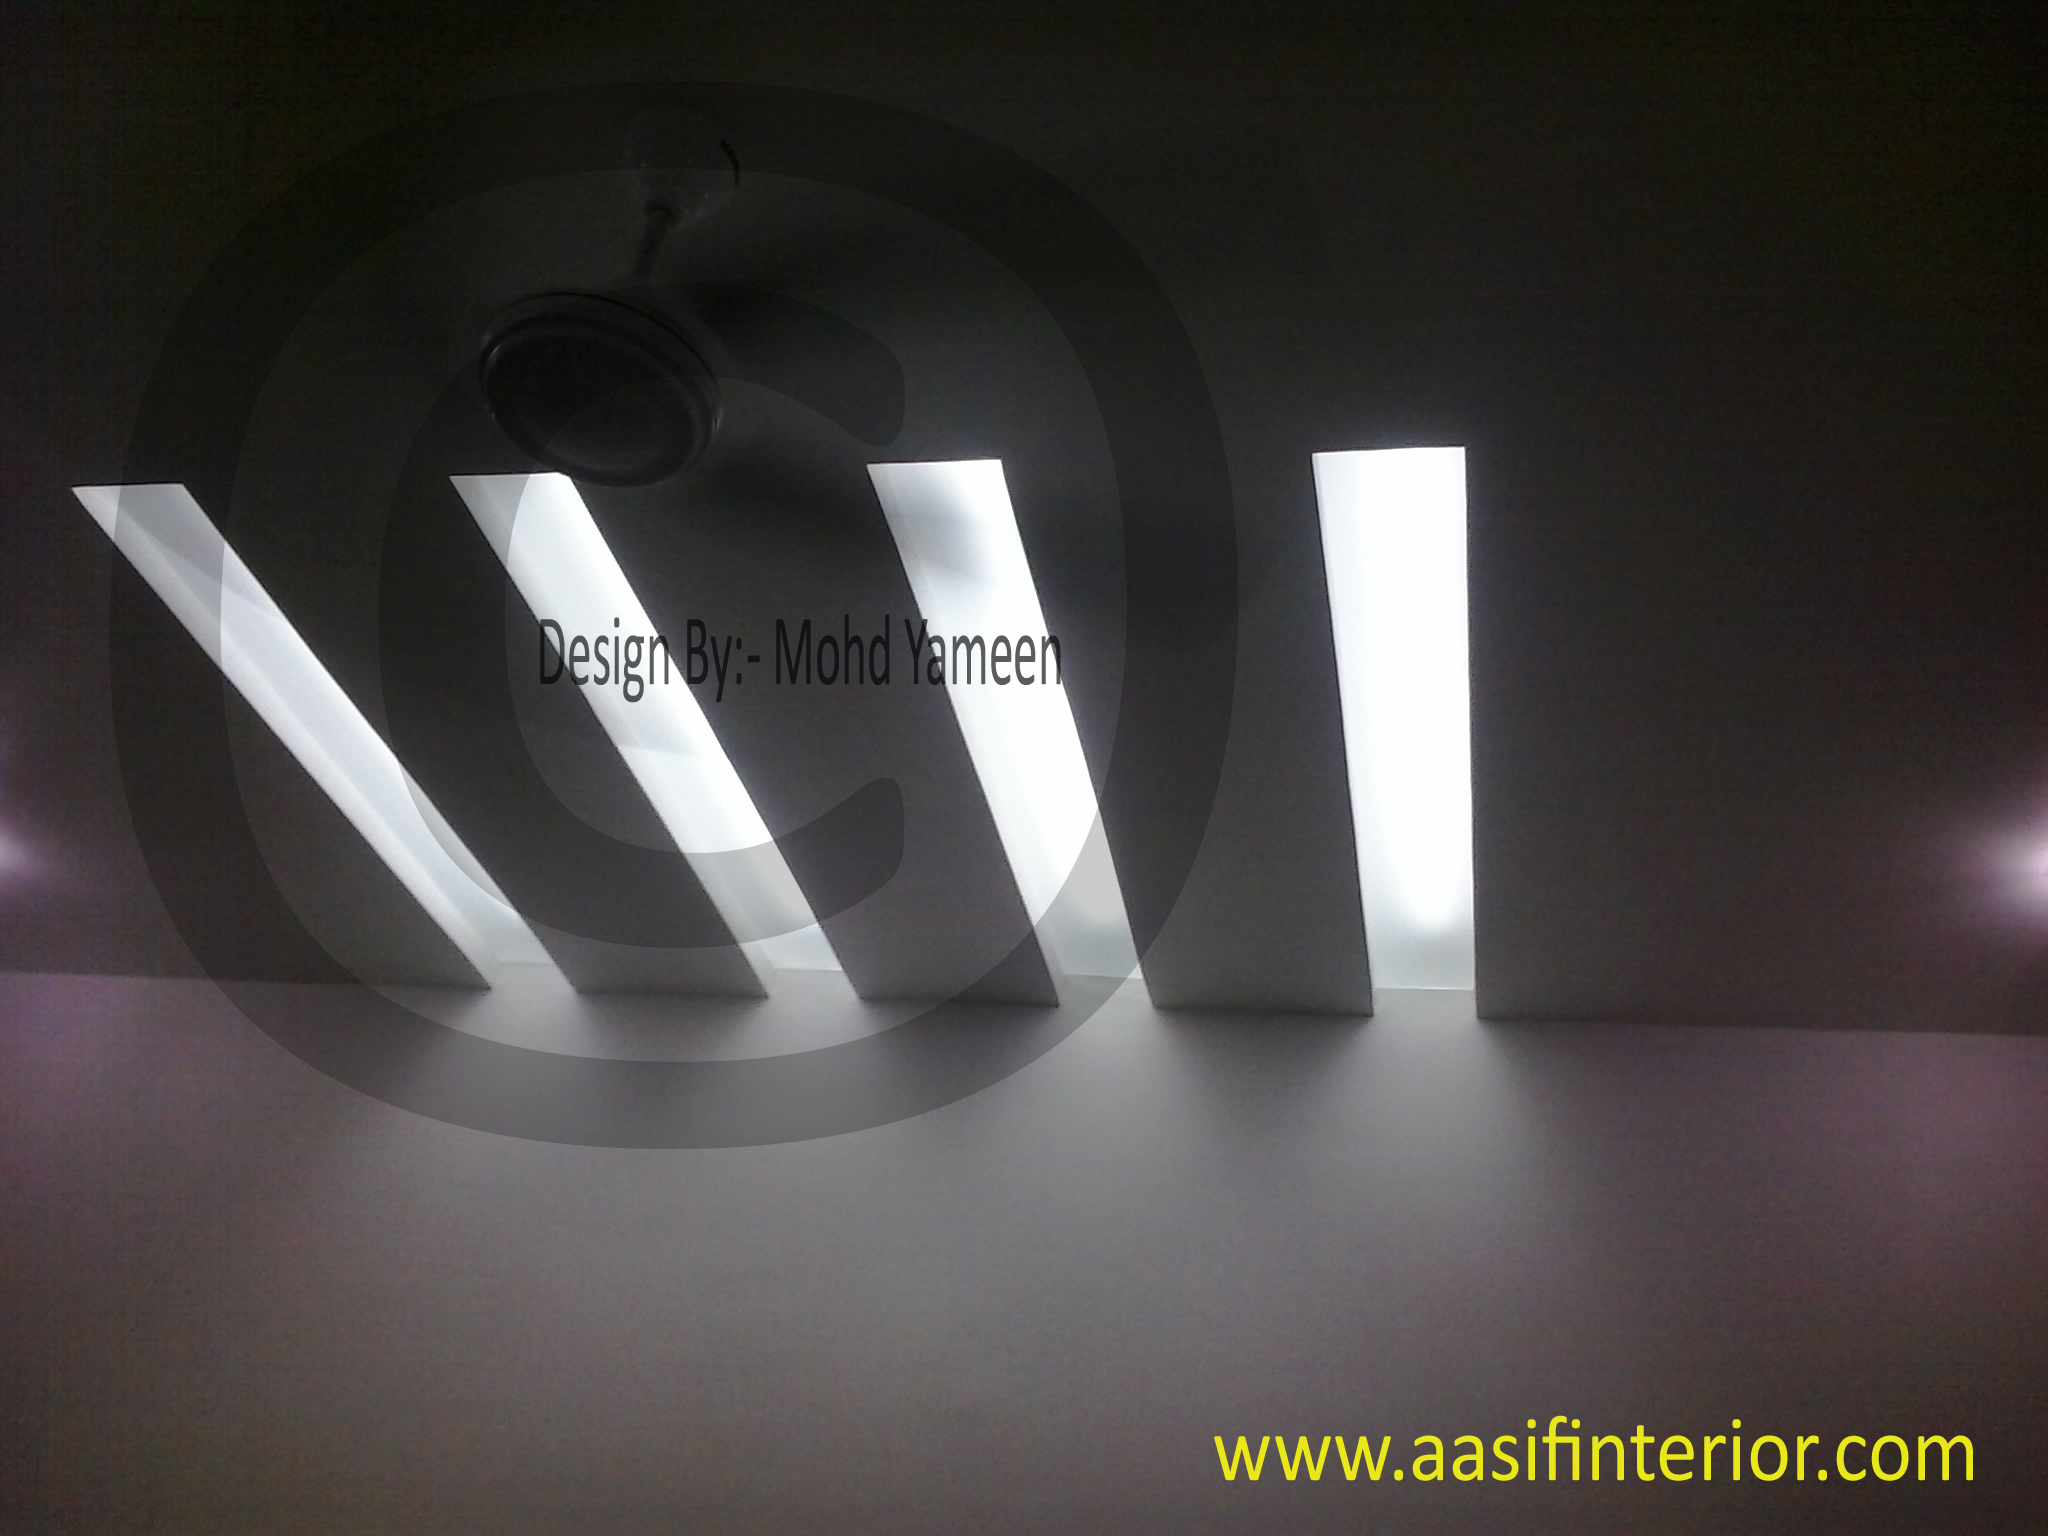 Celing Interior Designs - Aasif Interior Designer in MeerutCeling Interior Designs - Aasif Interior Designer in Meerut